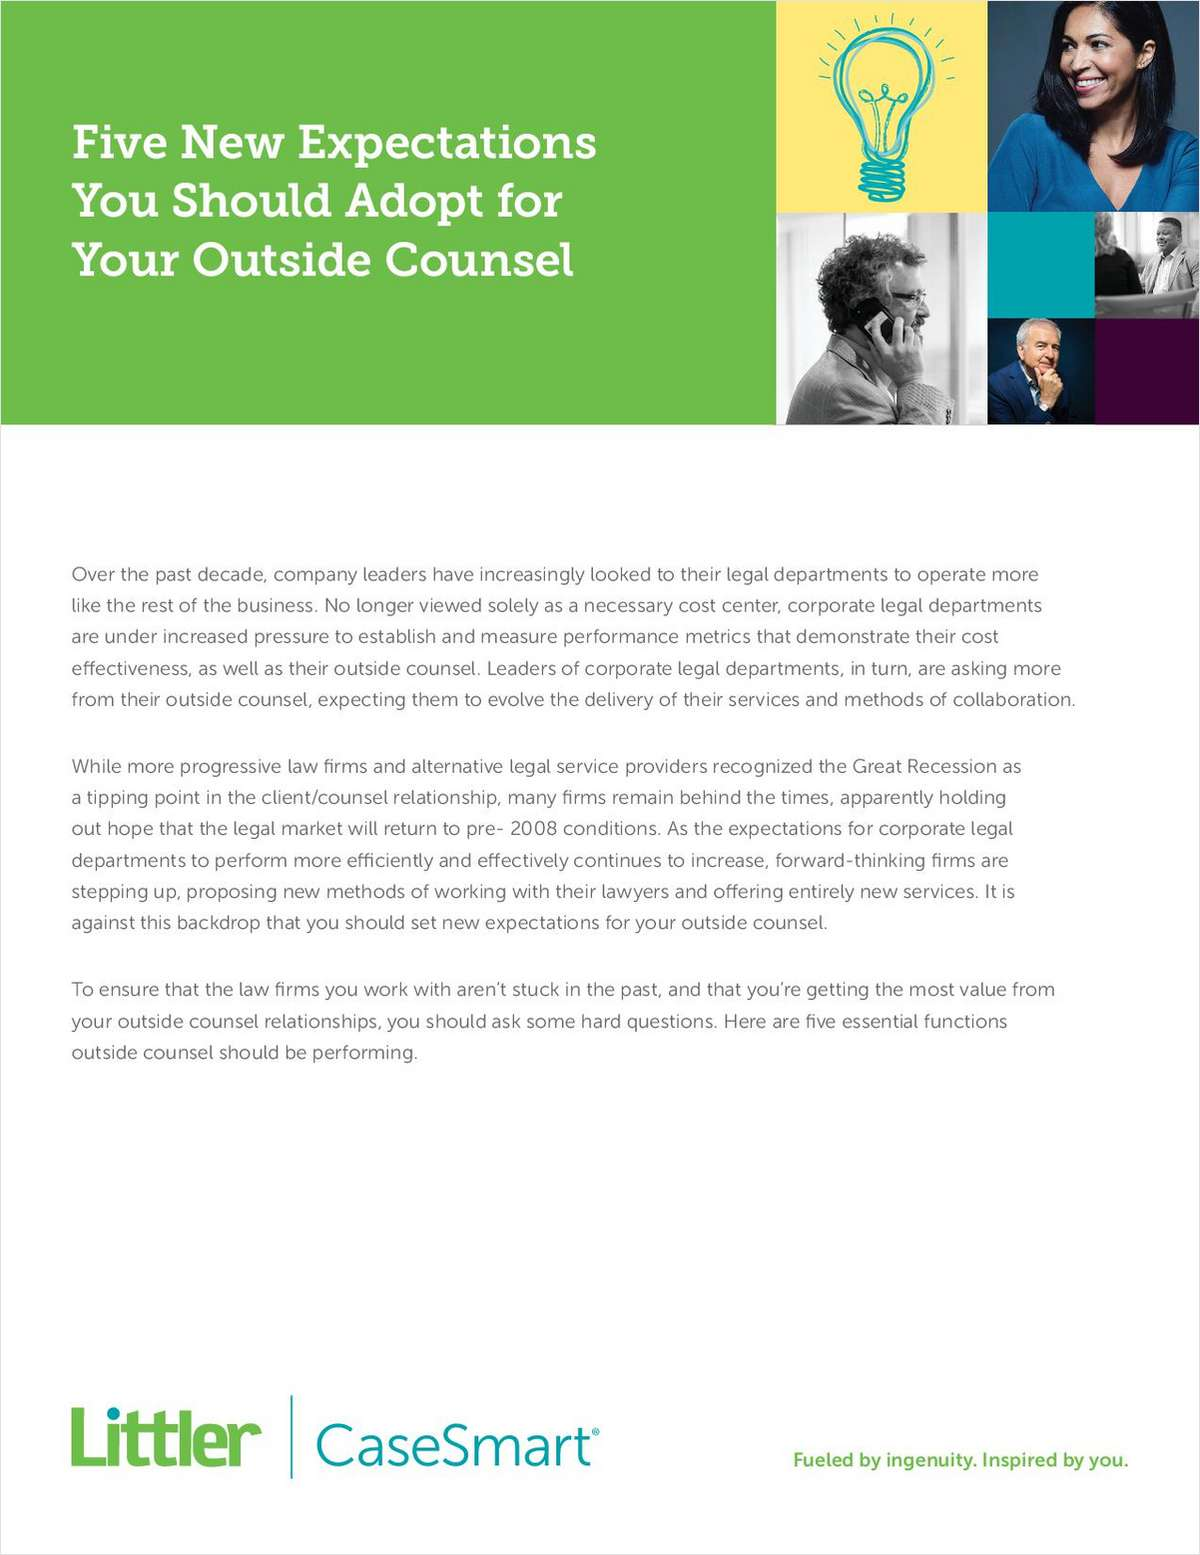 5 New Expectations You Should Adopt for Your Outside Counsel